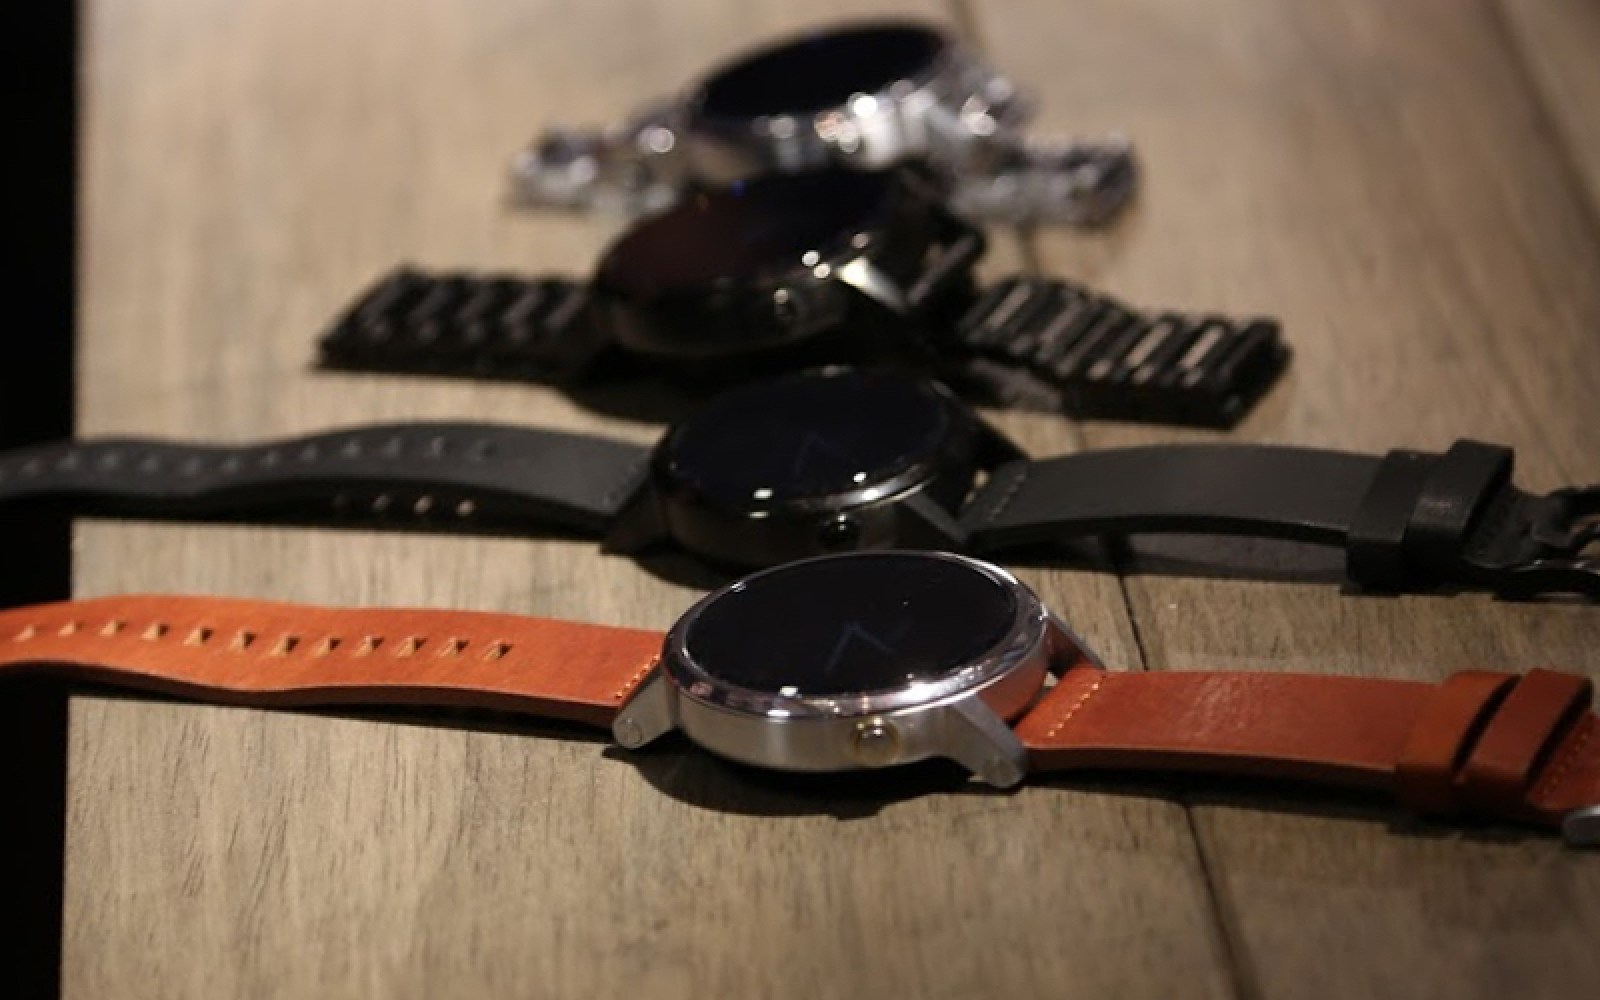 Release notes for the 2nd gen Moto 360 detail Doze mode & other Android 6.0 features